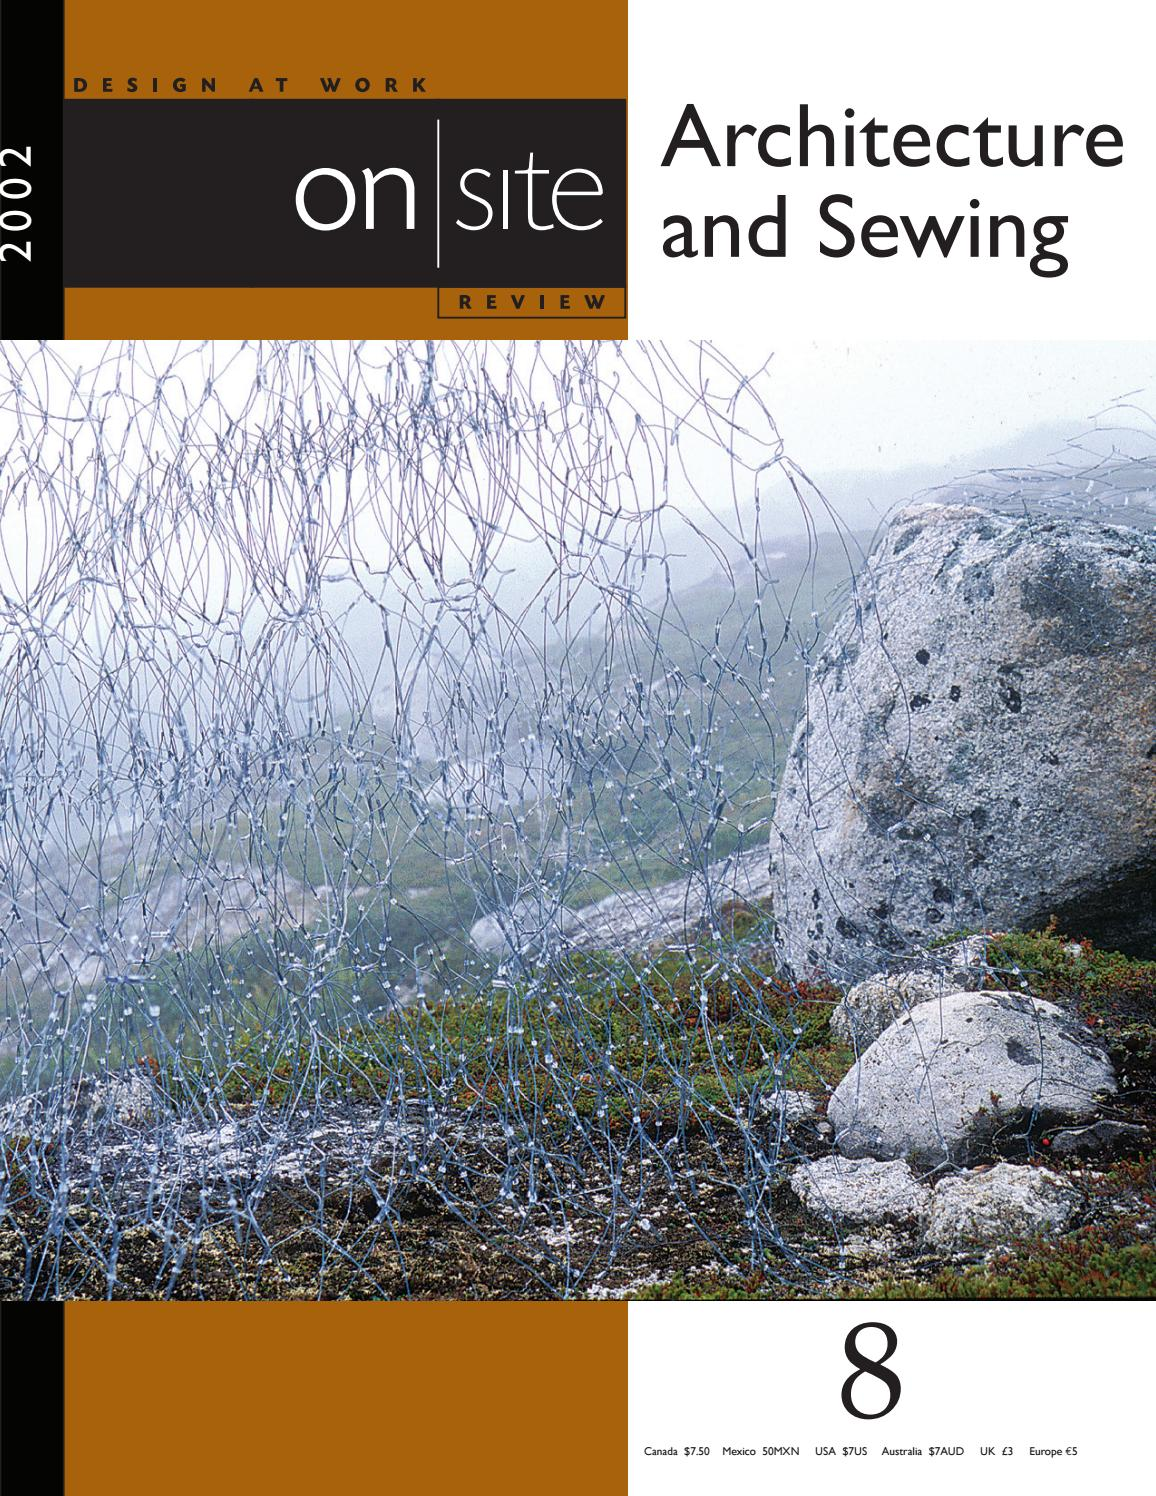 Attache Cadre Sans Percer on site 8 : architecture and sewingstephanie white - issuu